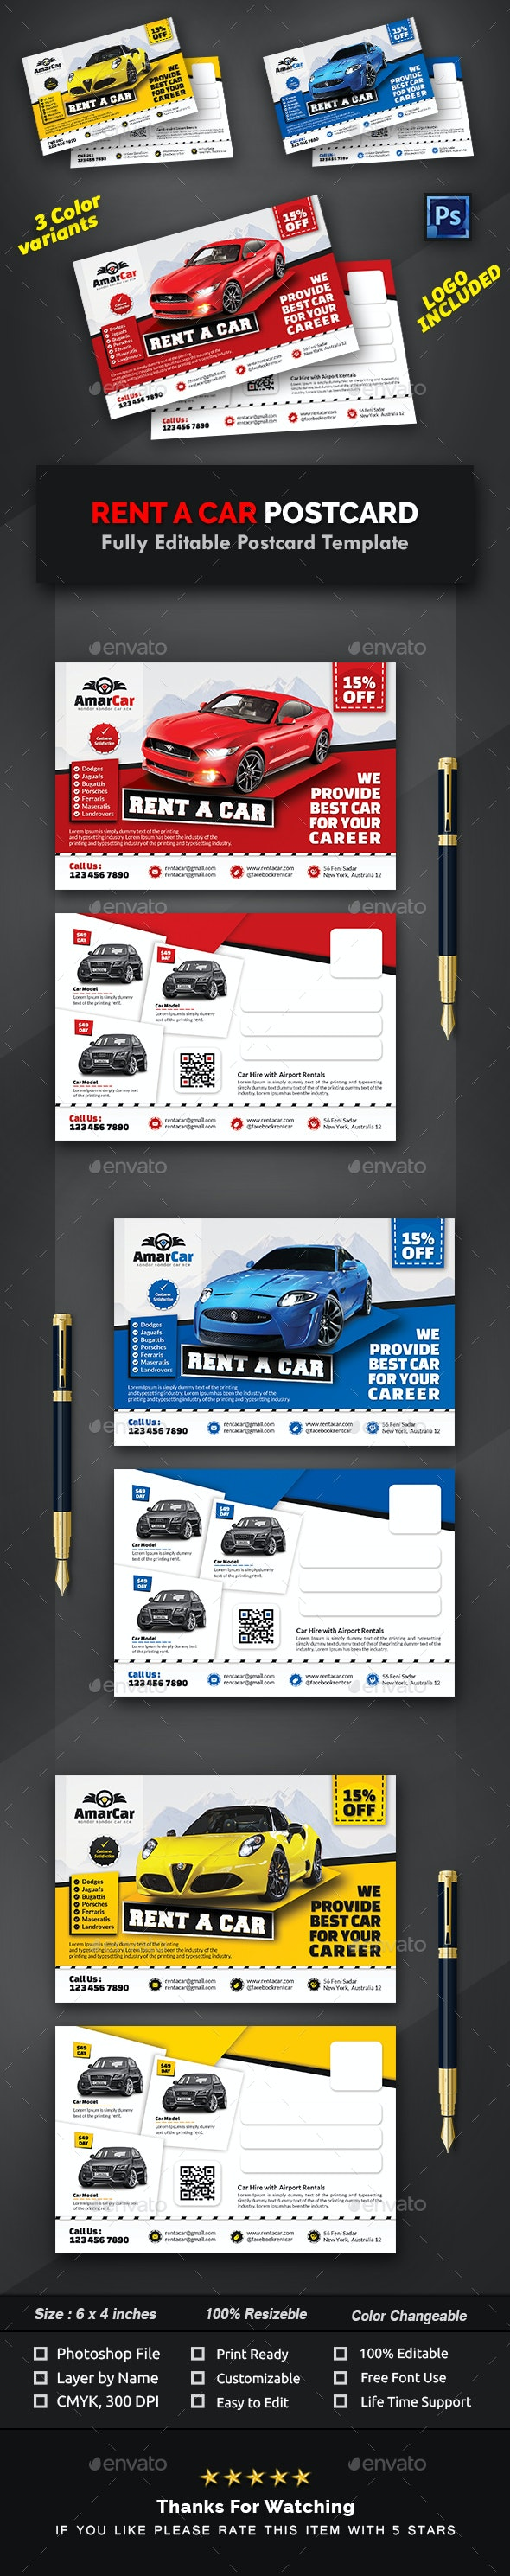 Rent a Car Postcard Template - Cards & Invites Print Templates